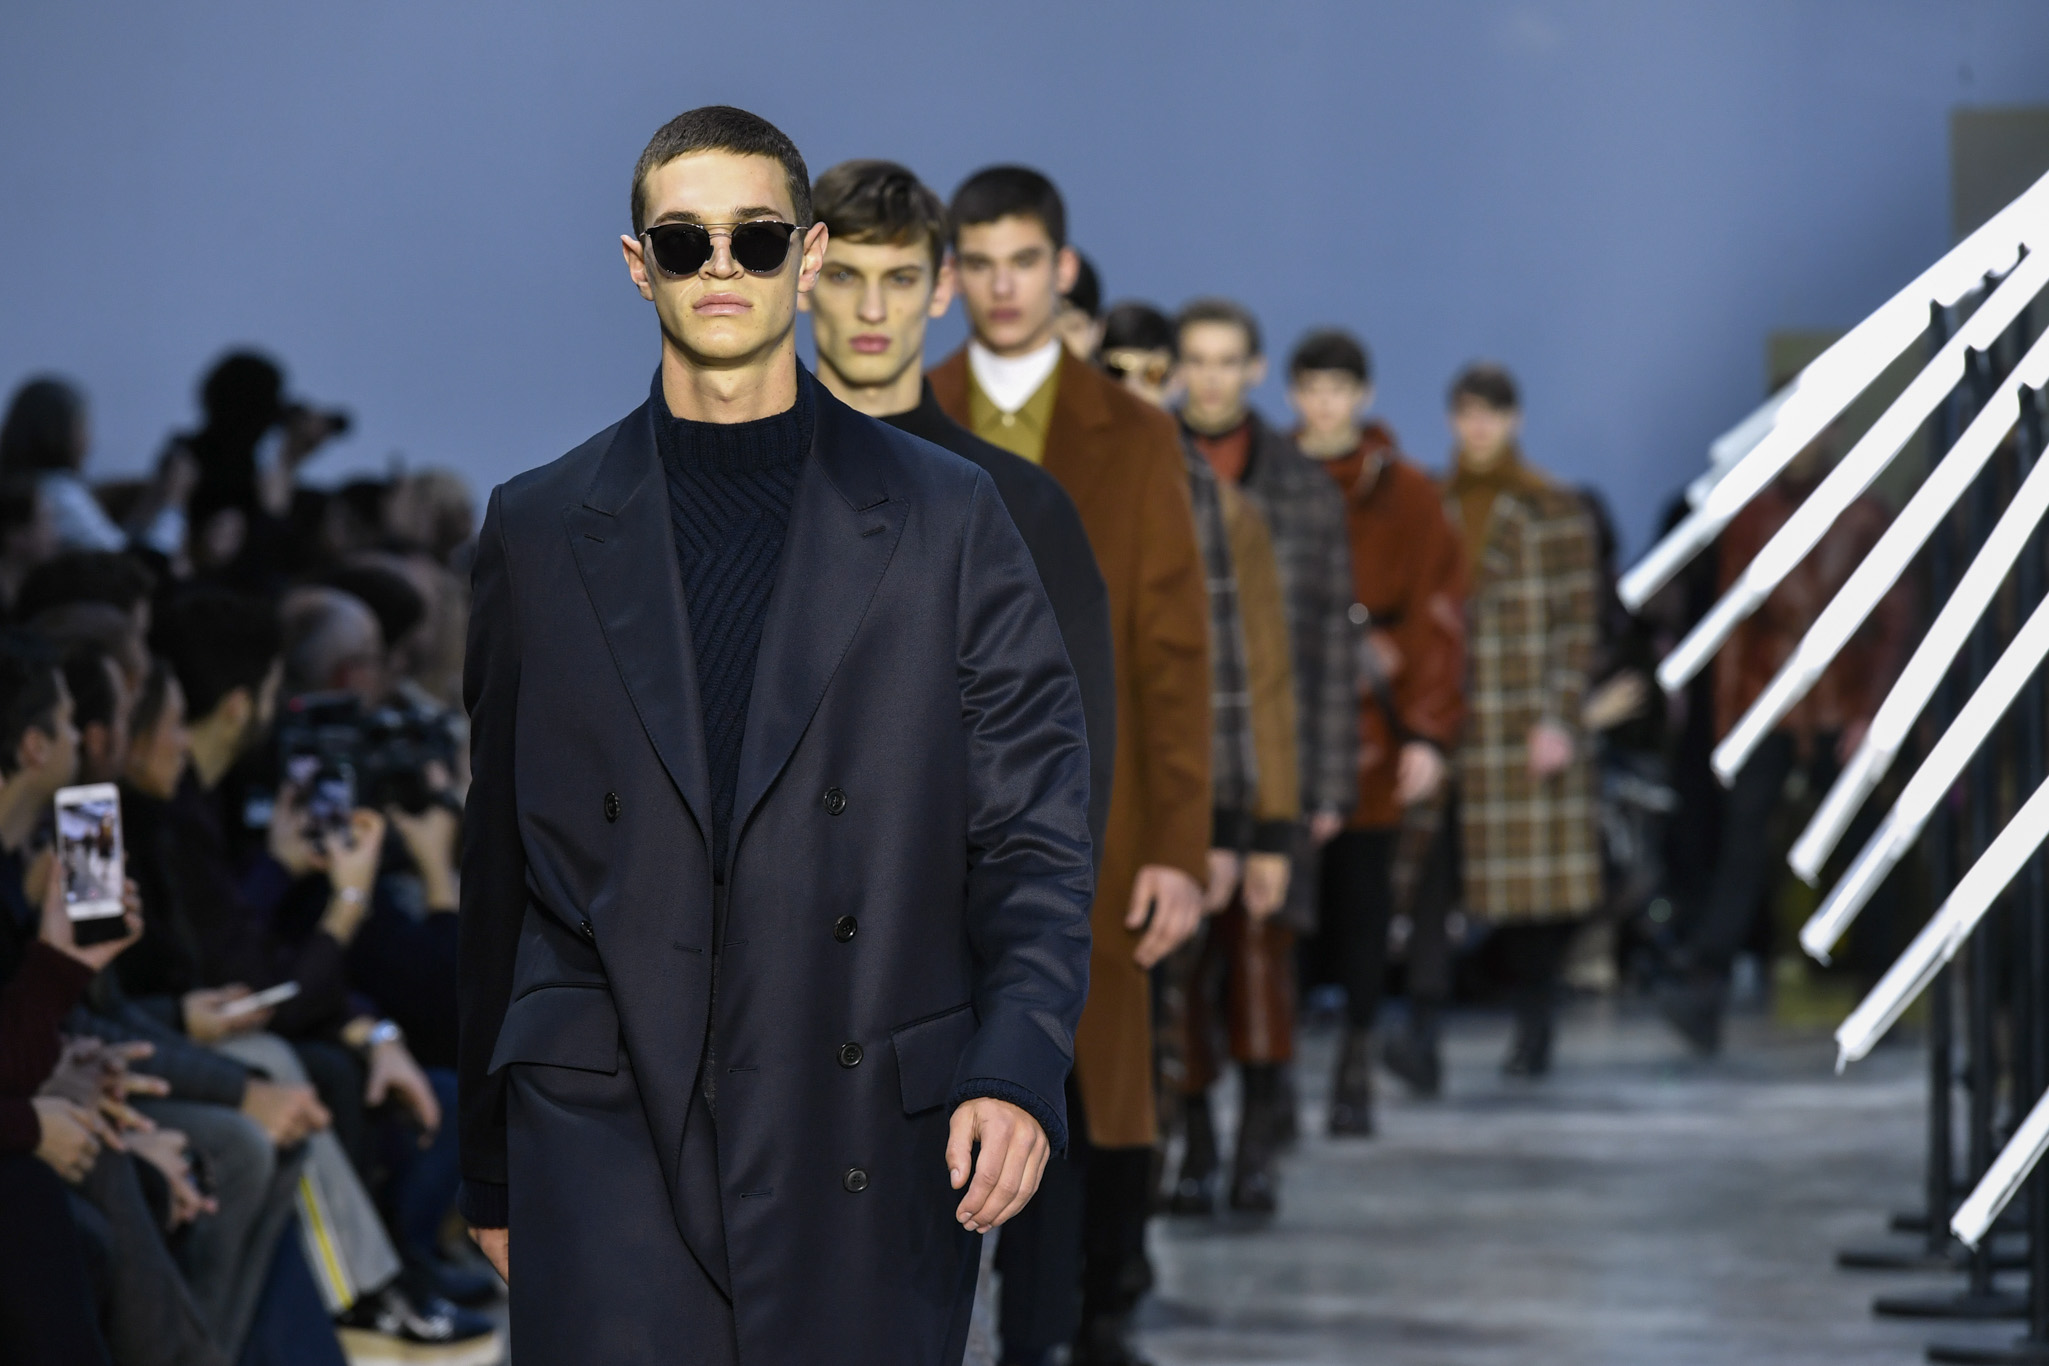 Cerruti 1881 Men's Fall 2018